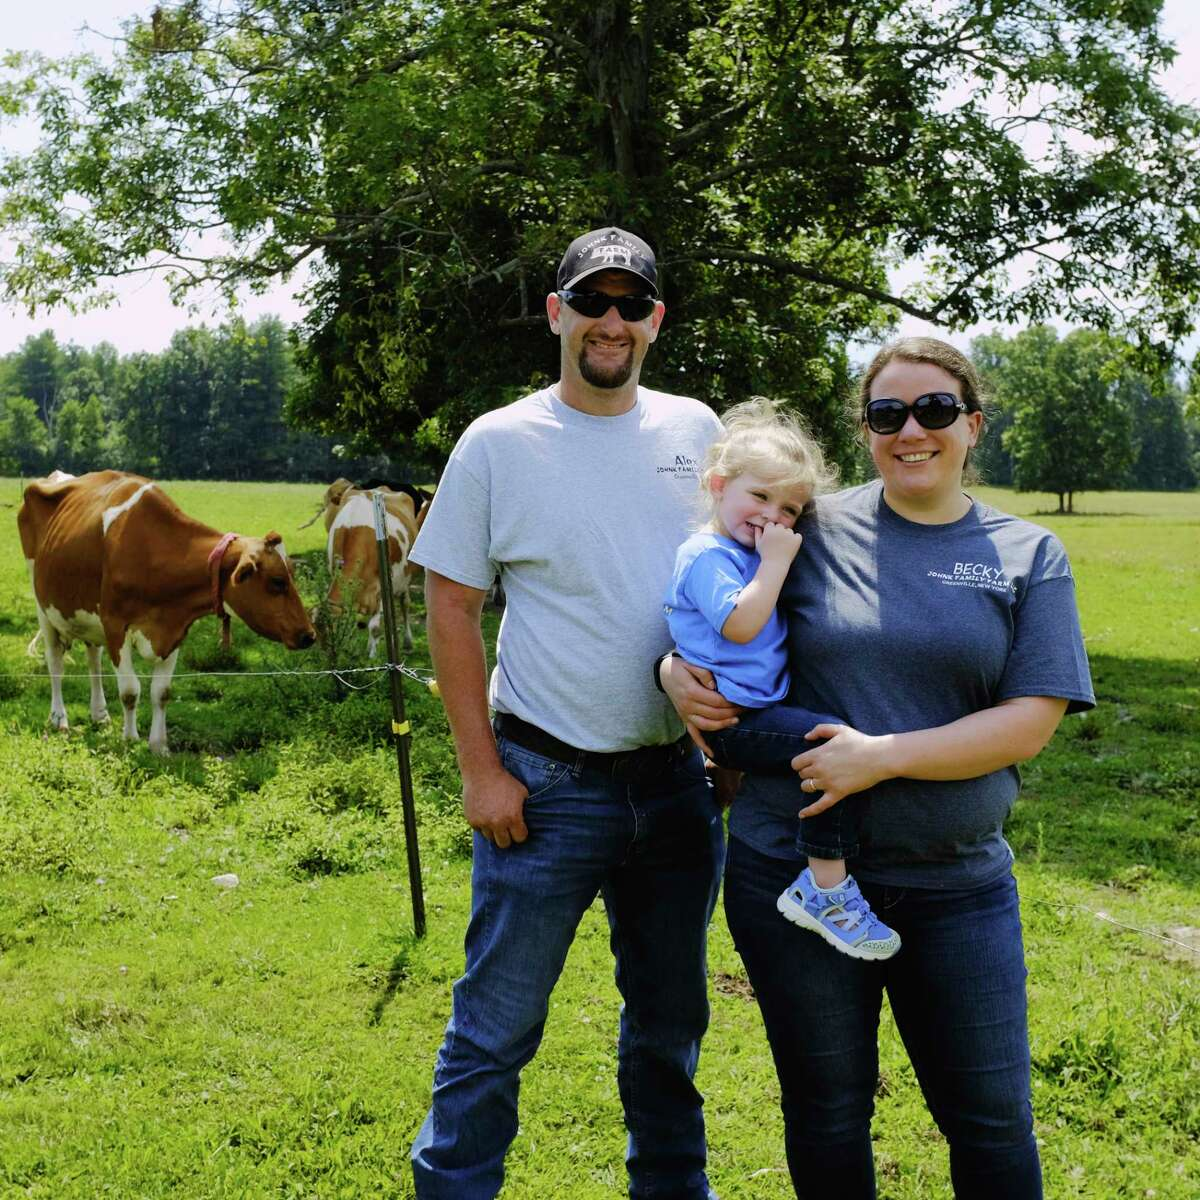 Alex Johnk, his wife Becky Johnk and their daughter, Rainy, pose for a photo at their farm, the Johnk Family Farm, on Monday, Aug. 10, 2020, in Greenville, N.Y. (Paul Buckowski/Times Union)